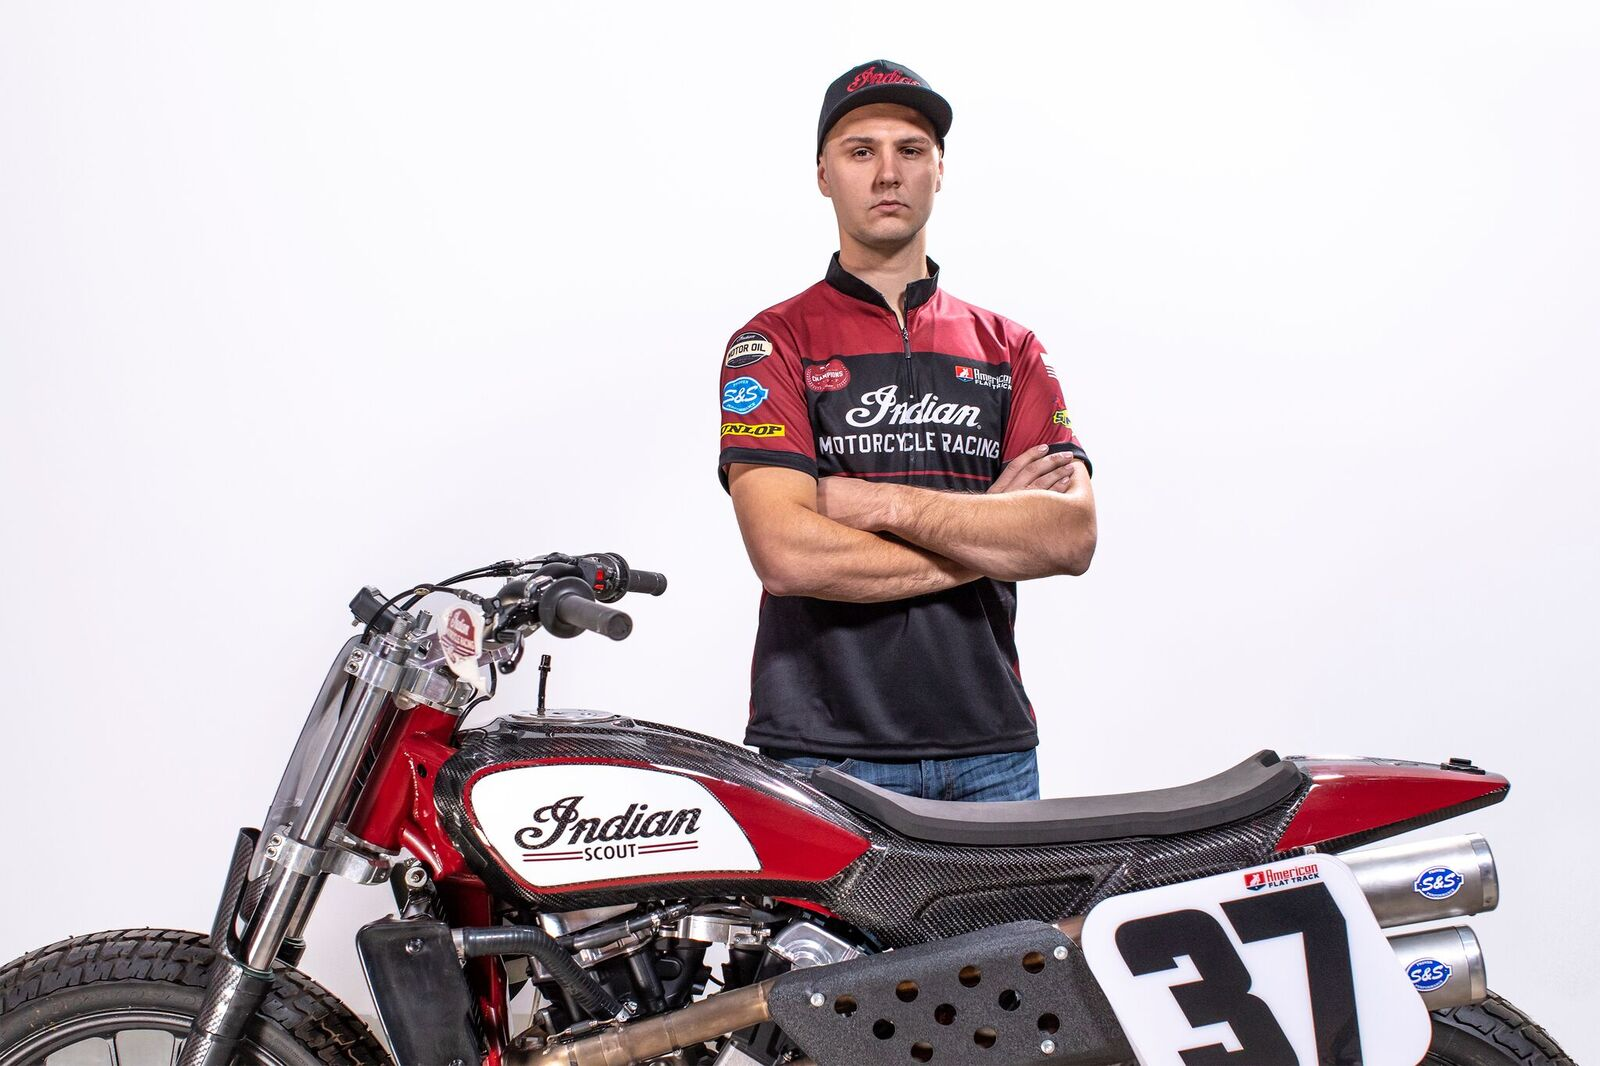 Indian Motorcycle Racing Wrecking Crew - Bronson Bauman